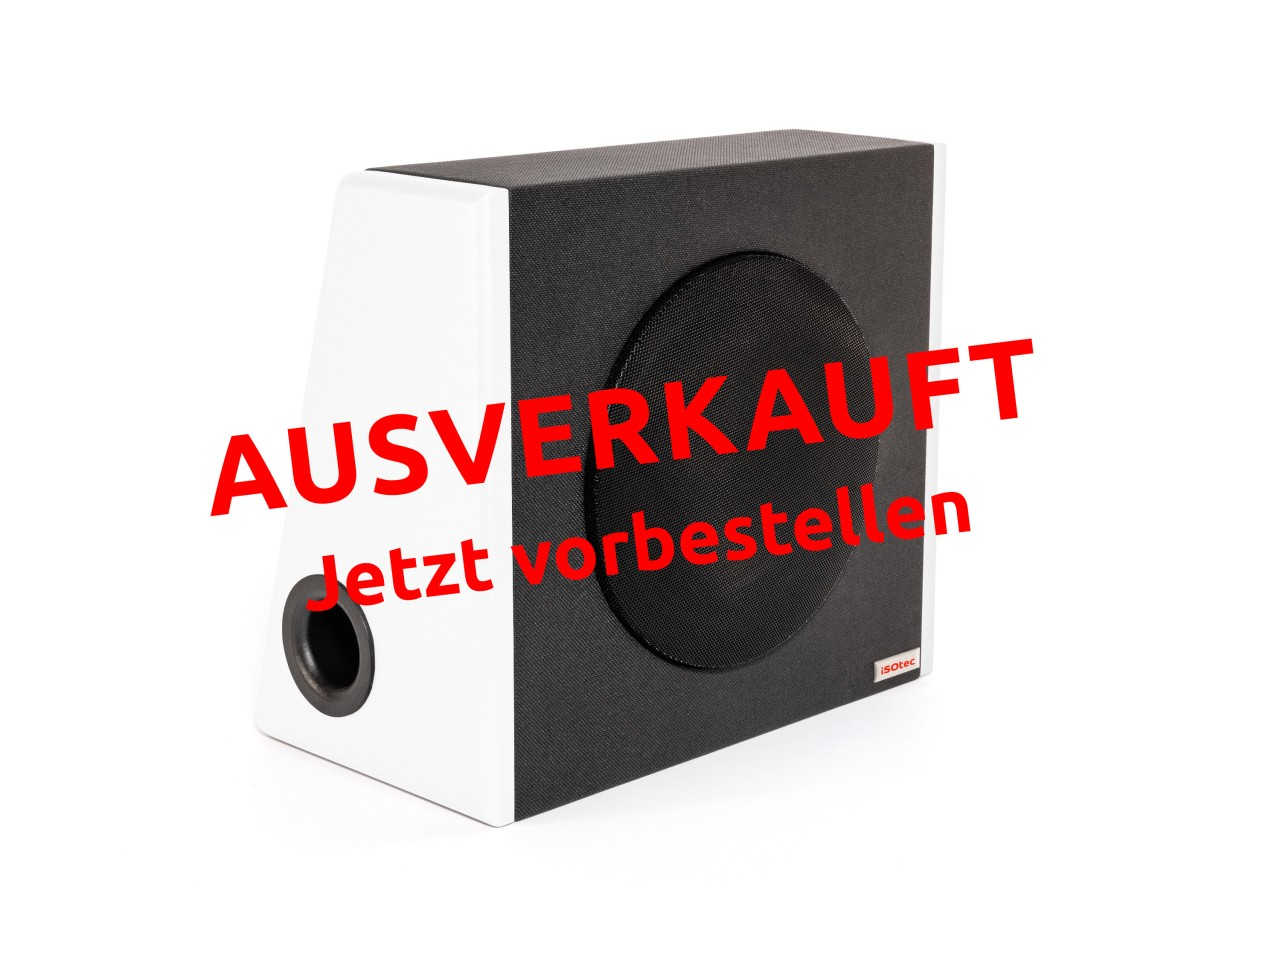 SUB c | Kofferraum Woofer | 20cm 120 Watt 4 Ohm | White Edition